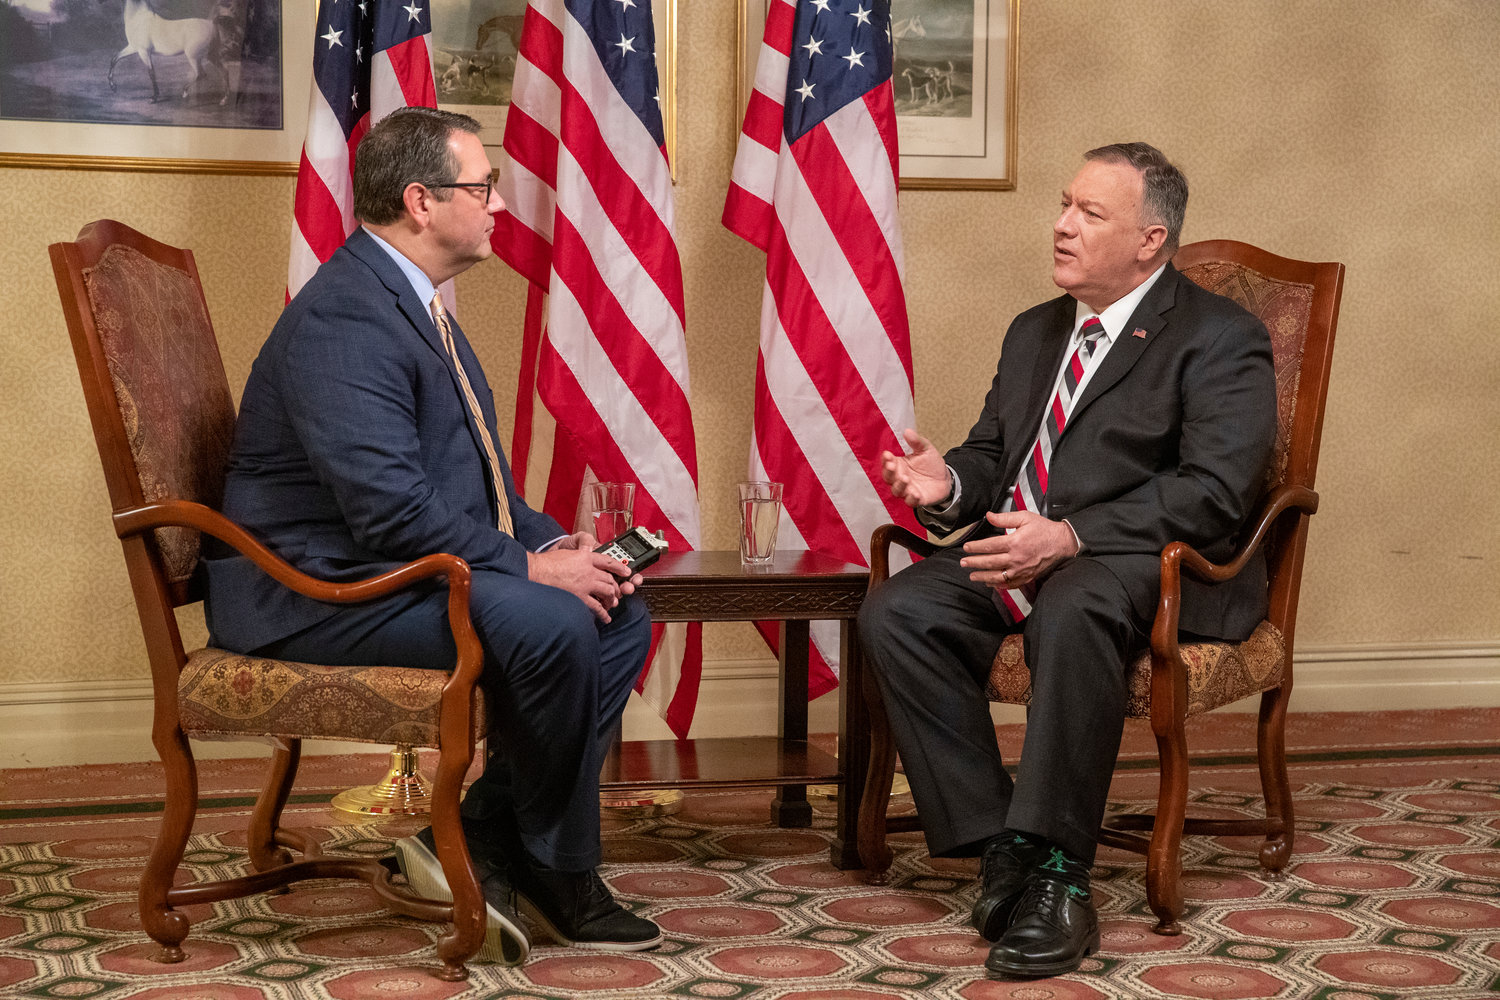 Kentucky Today Editor Brandon Porter, left, interviews U.S. Secretary of State Mike Pompeo on Monday. (Kentucky Today/Robin Cornetet)